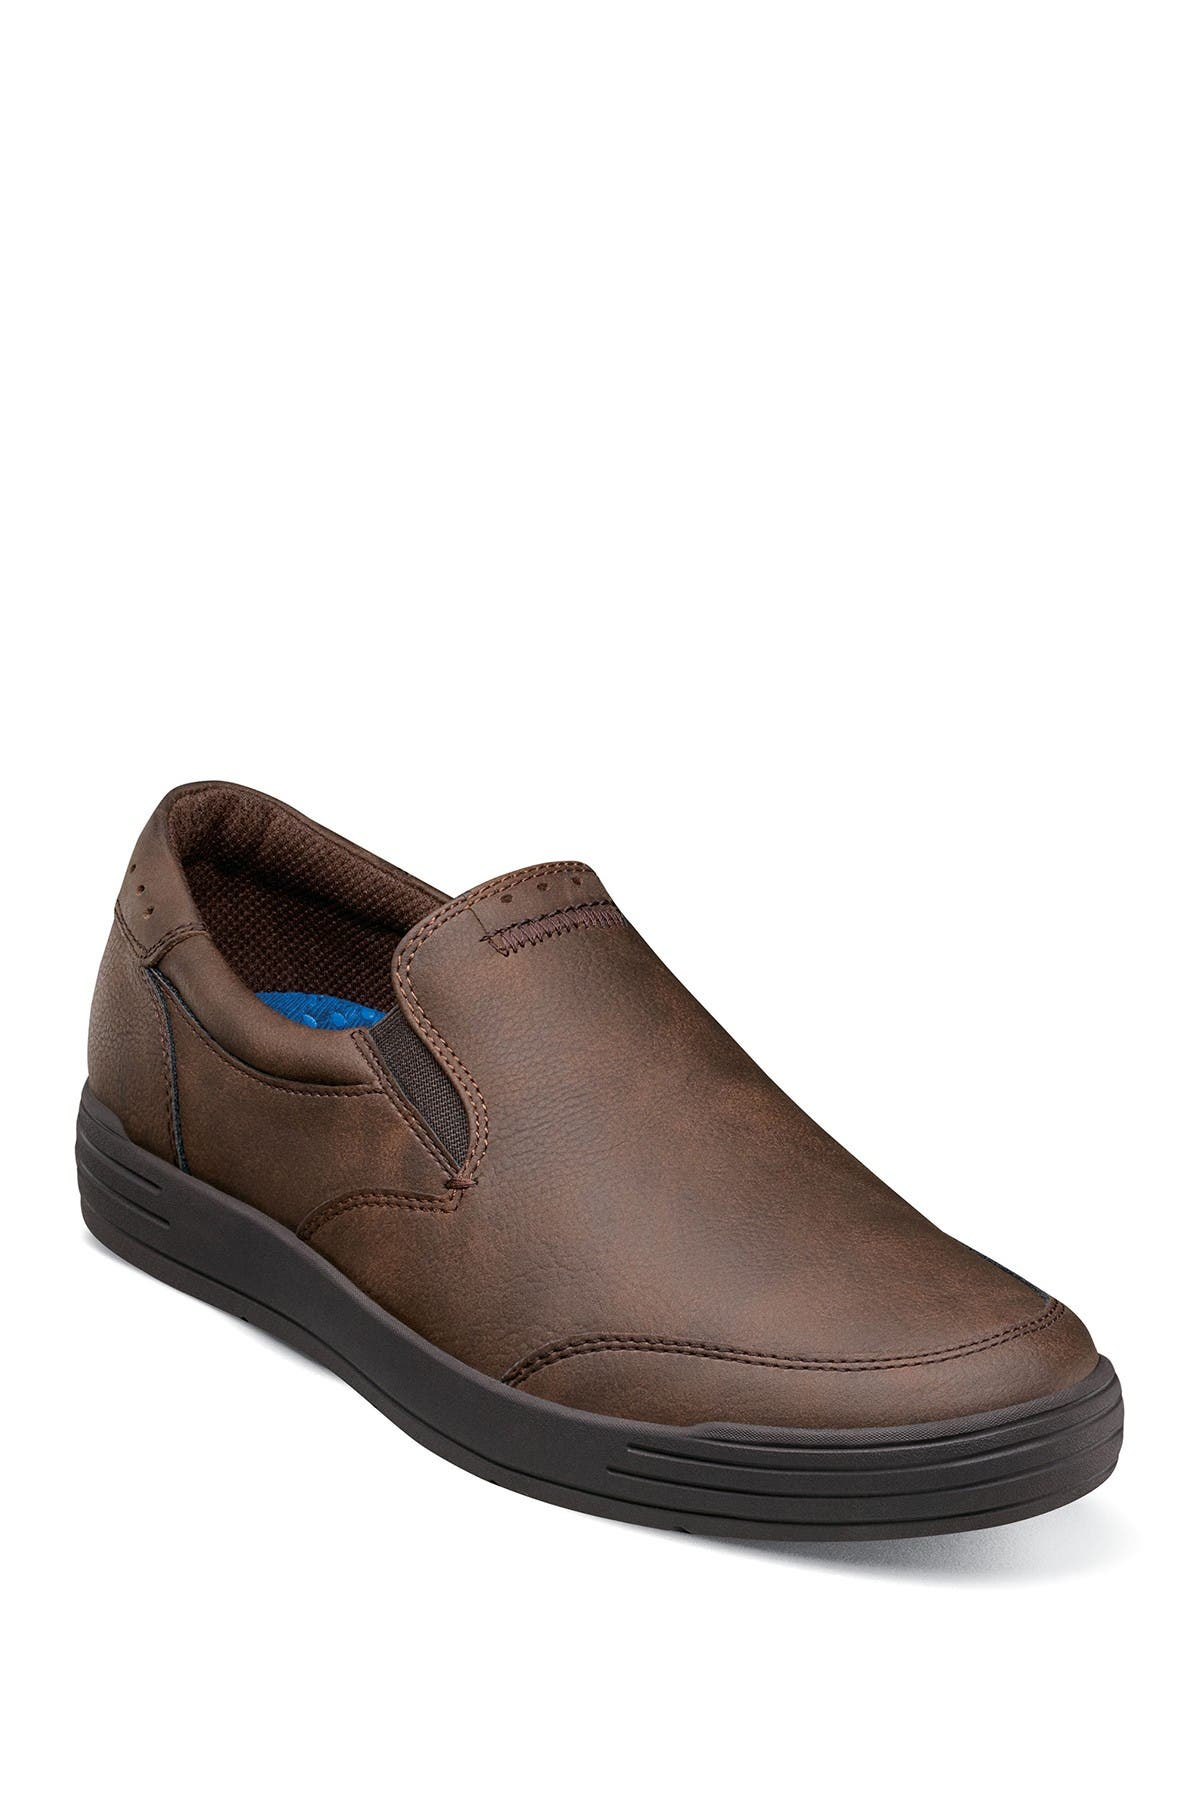 Image of NUNN BUSH Kore City Walk Slip-On Sneaker